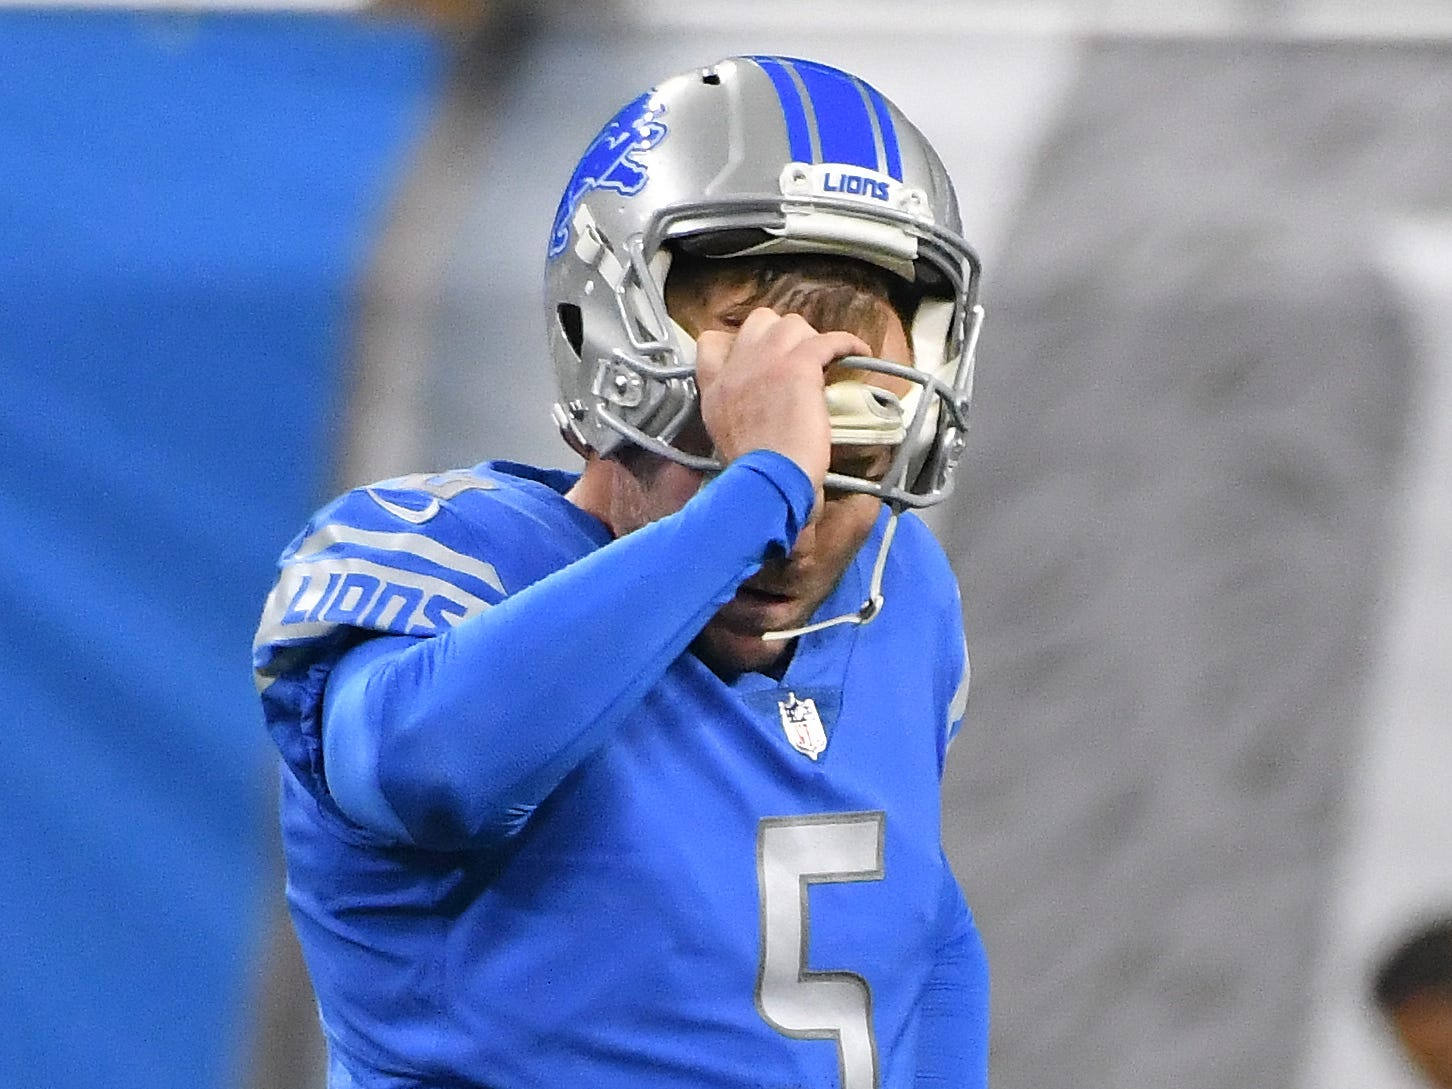 Lions kicker Matt Prater walks off the field after missing a second field-goal attempt, this one in the third quarter.